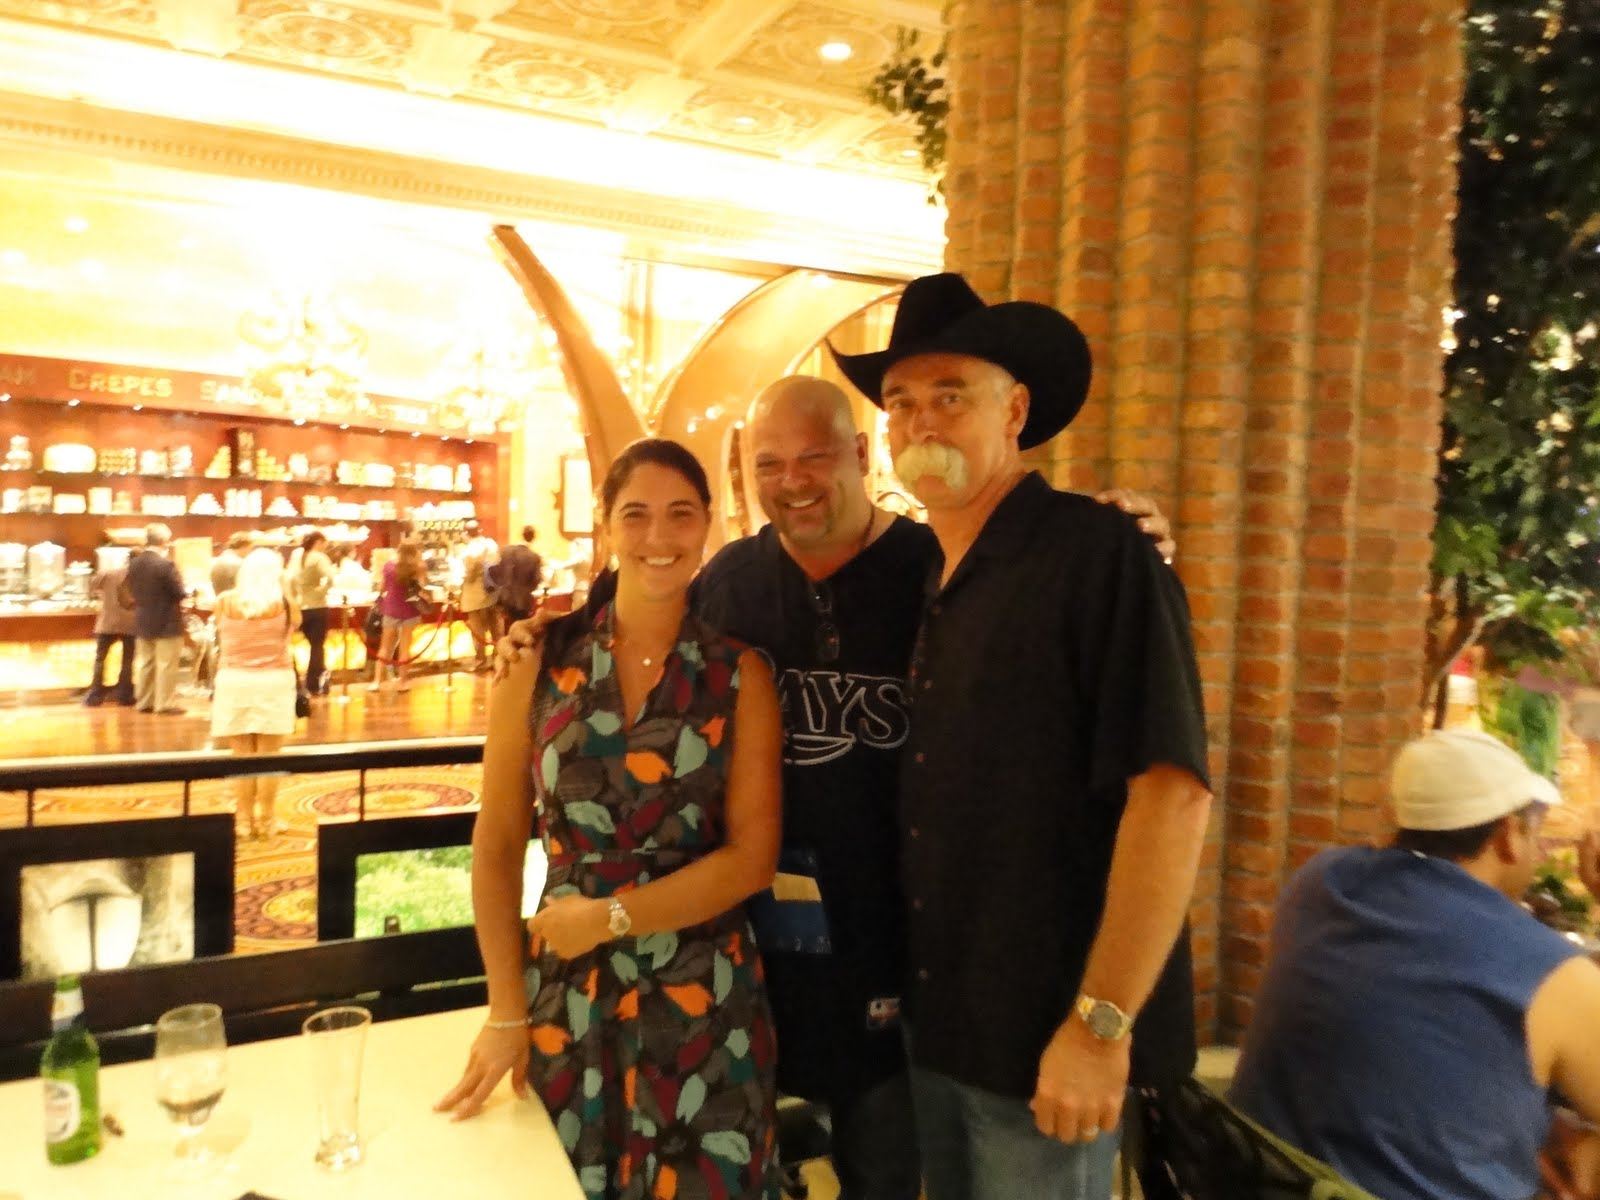 Rick+harrison+pawn+stars+wife